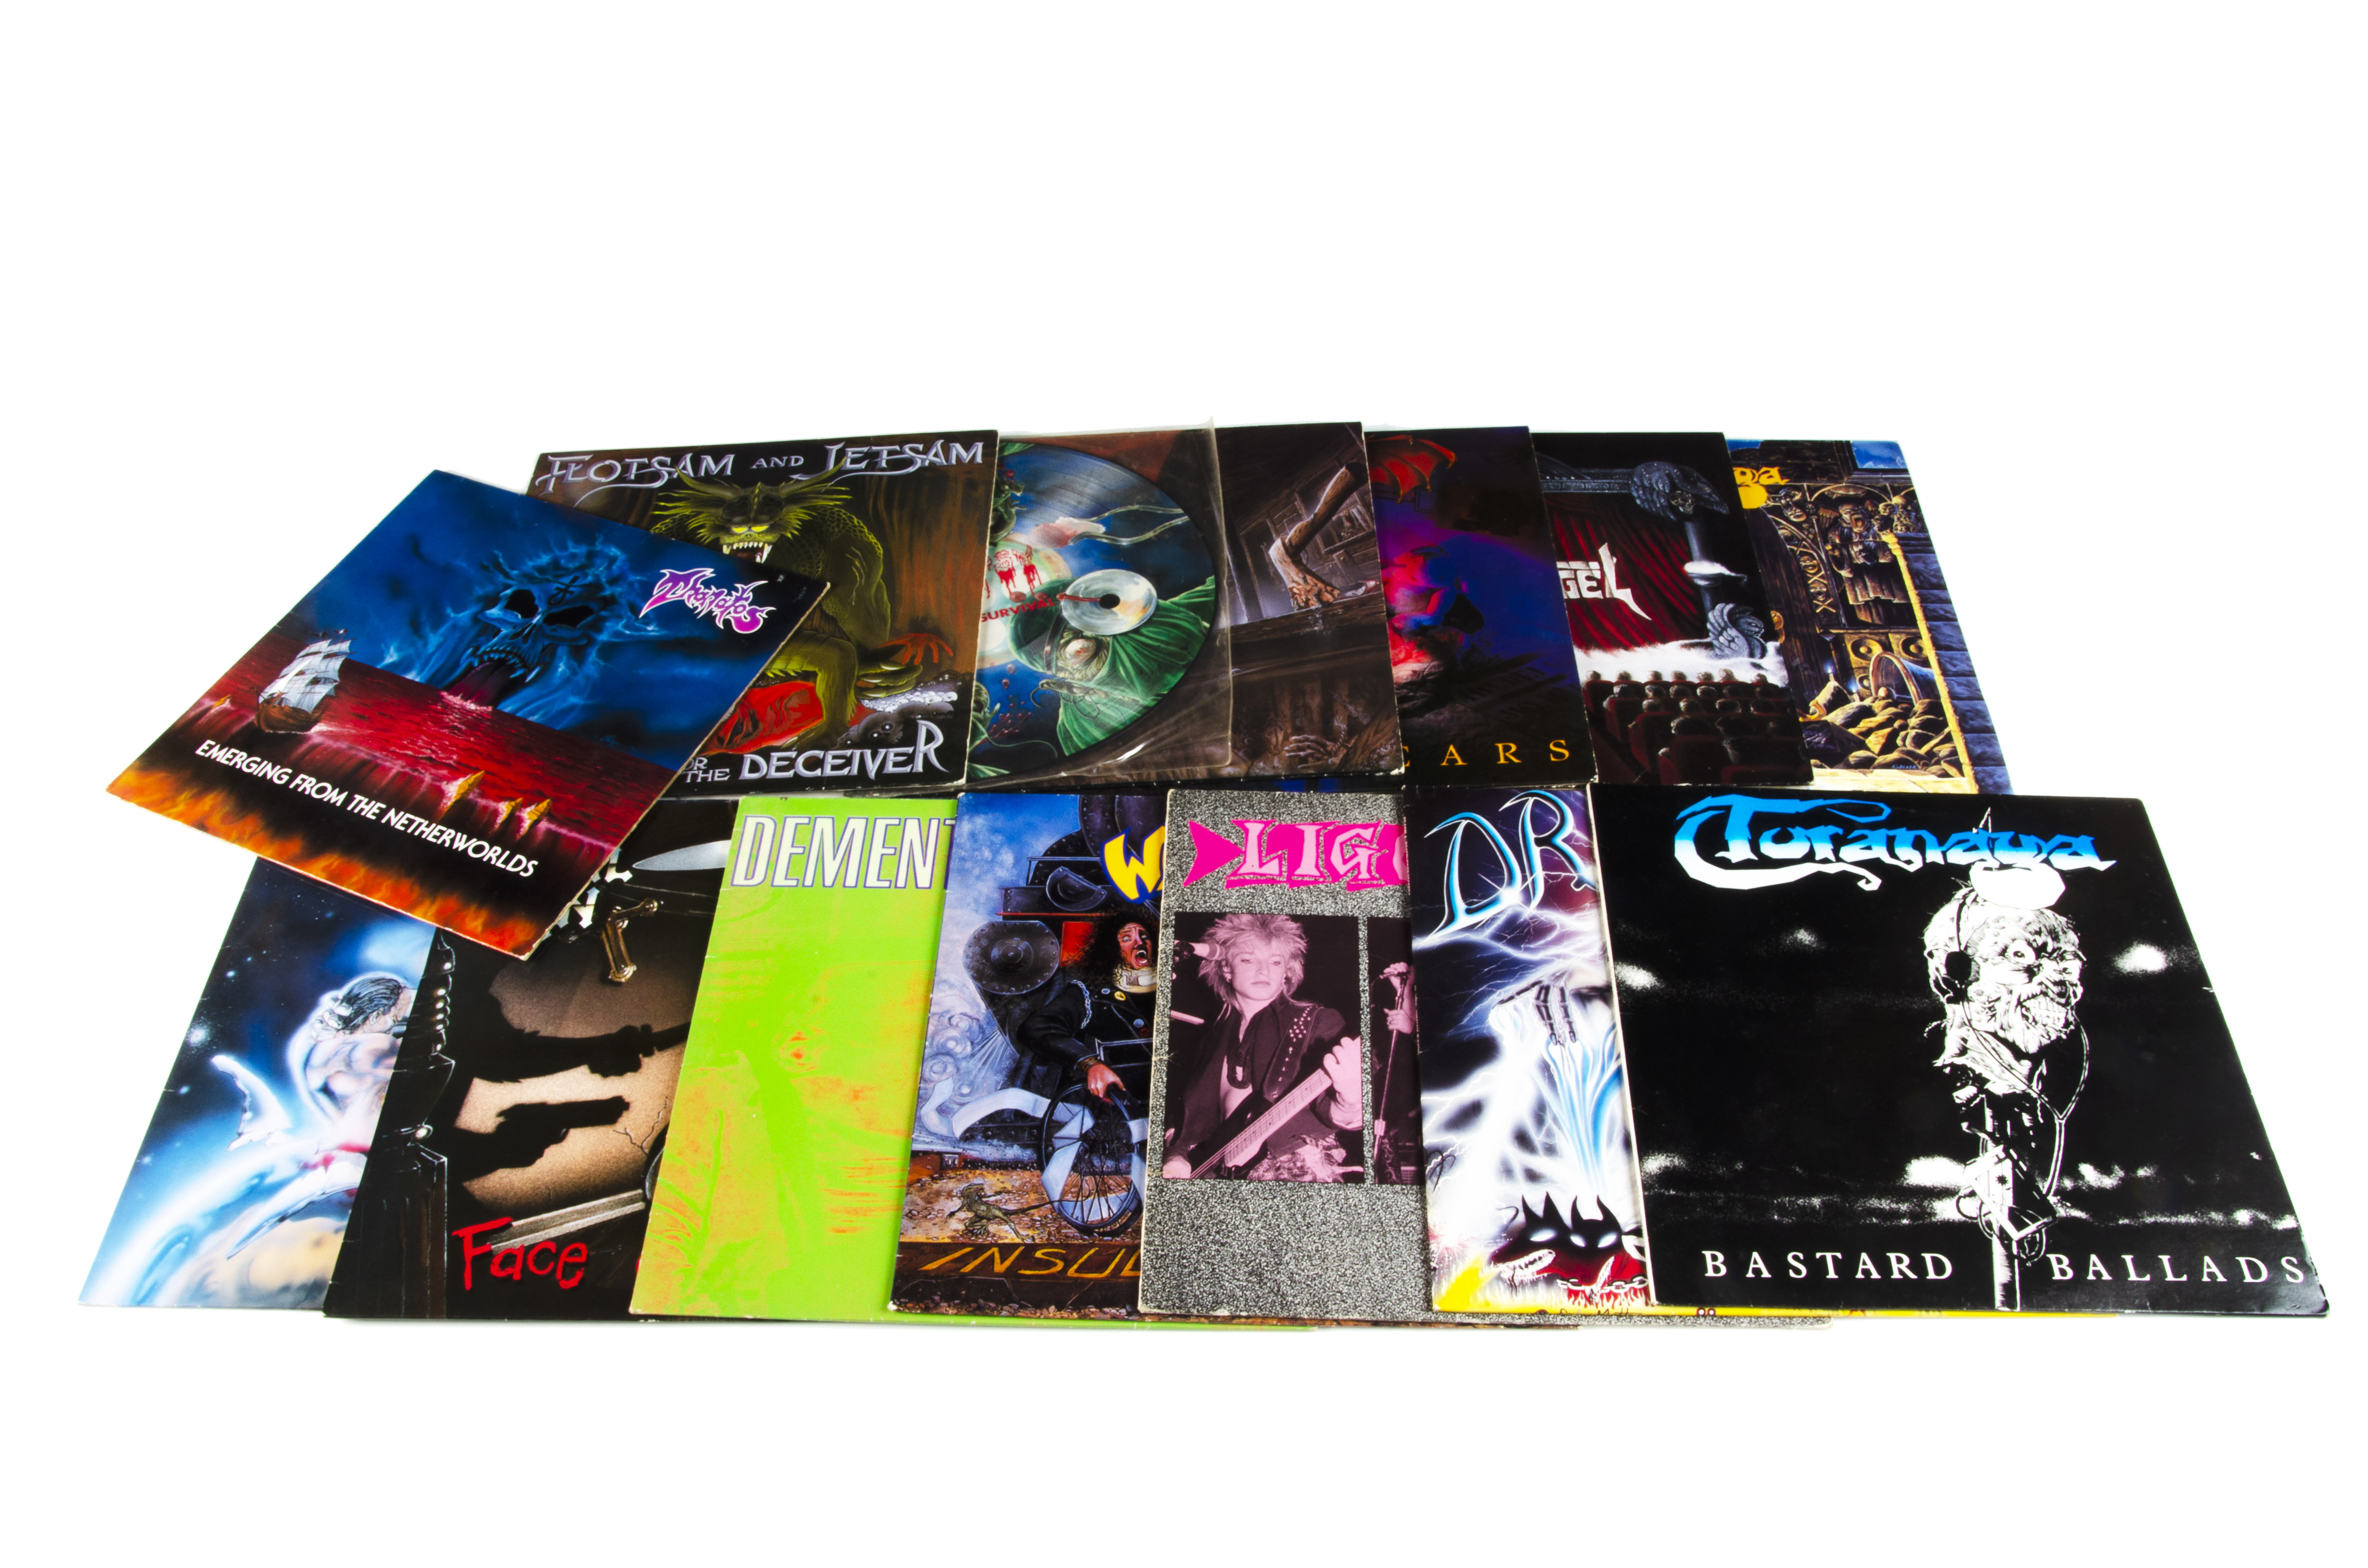 Thrash / Heavy Metal LPs, fourteen albums of mainly Thrash, Death and Heavy Metal with artists